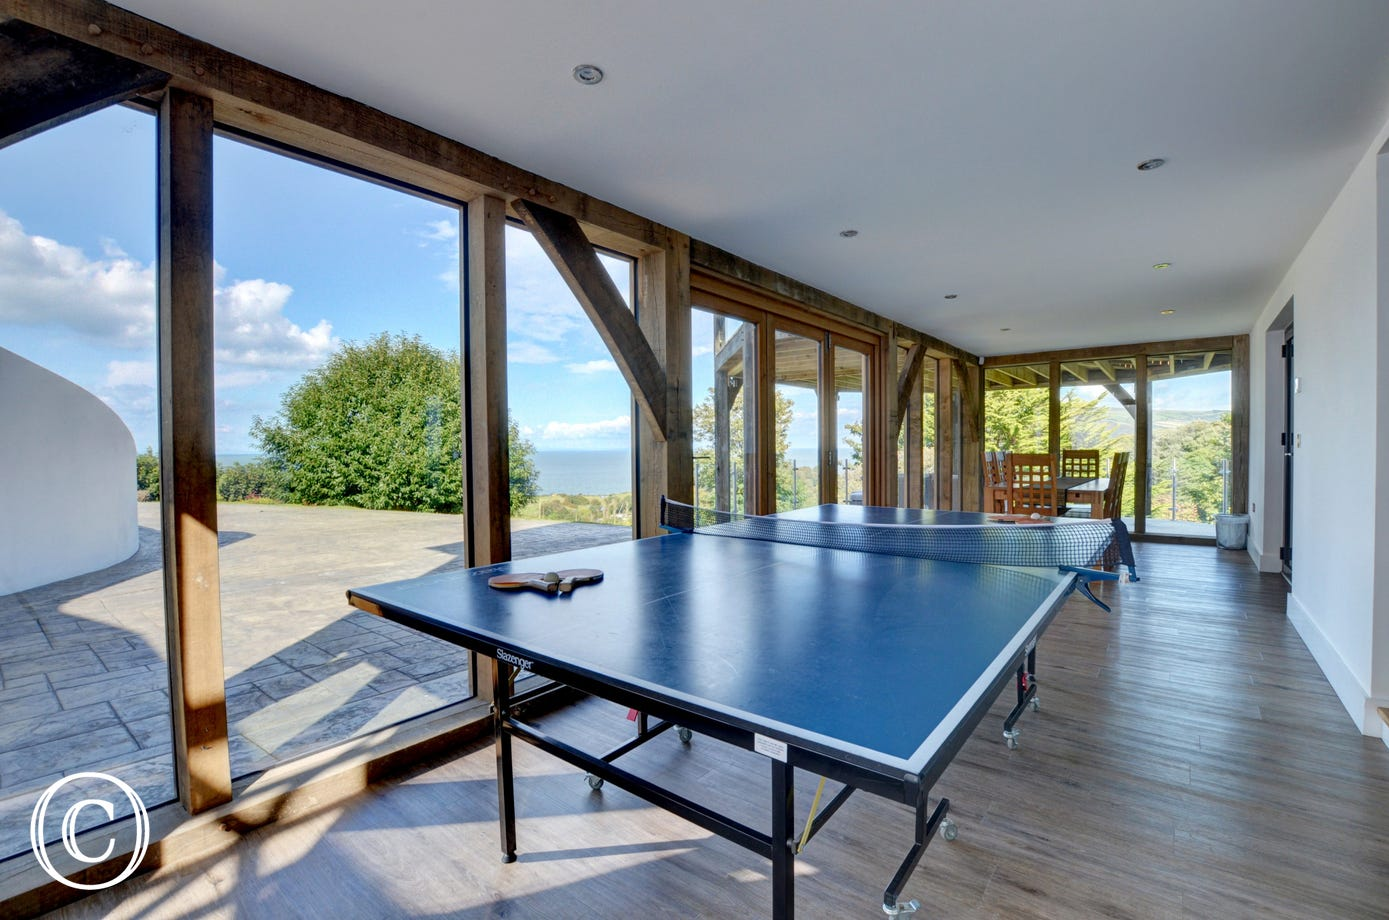 The spacious table tennis room